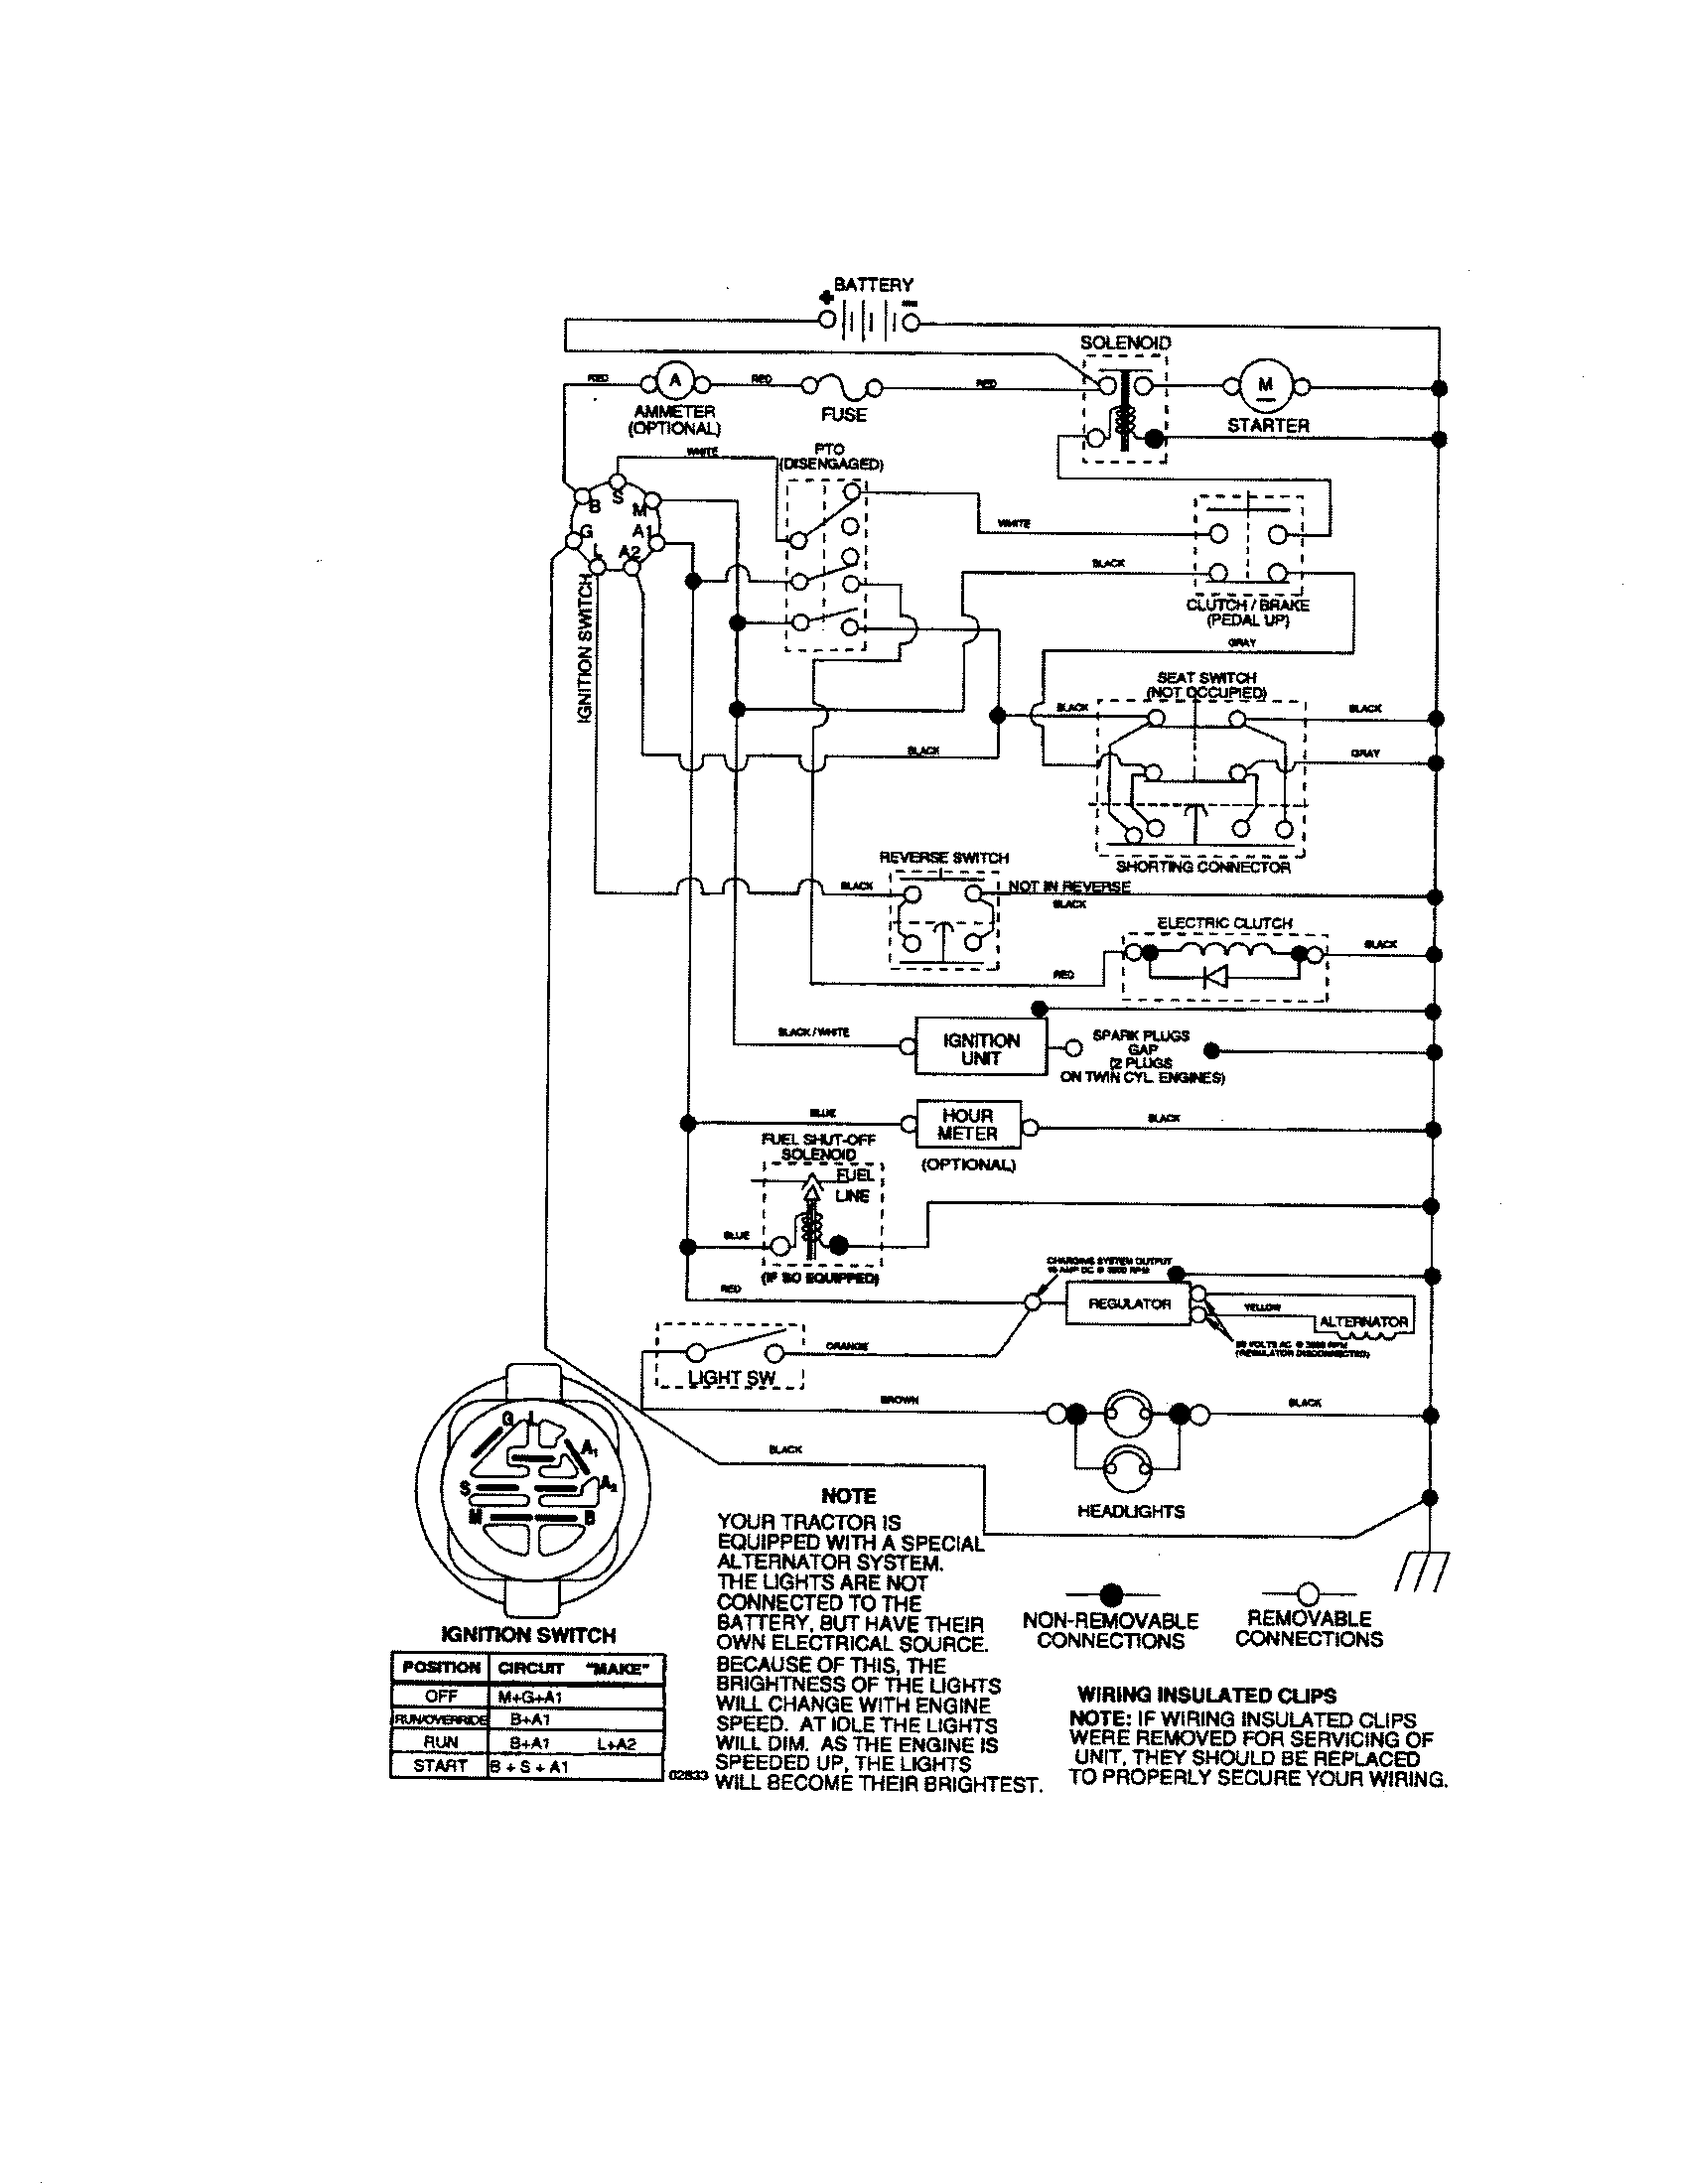 craftsman dyt 4000 wiring diagram turtle reproductive system model 917275685 lawn tractor genuine parts